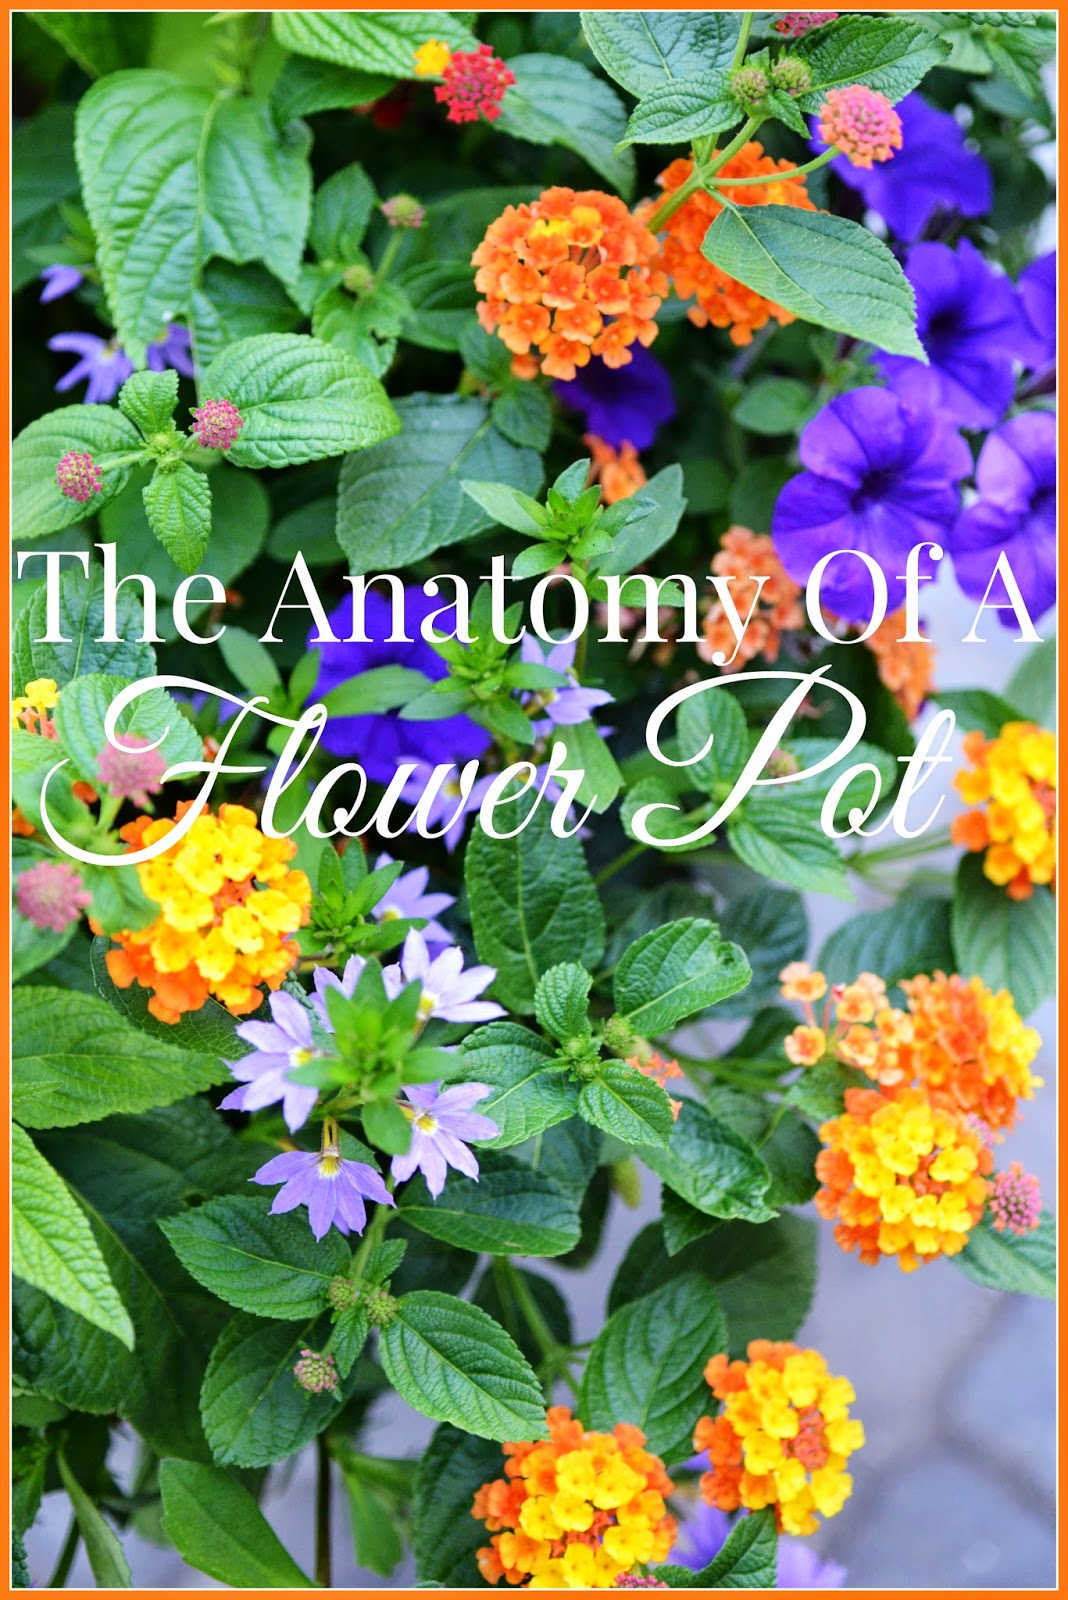 The Anatomy Of A Flower Pot Stonegable